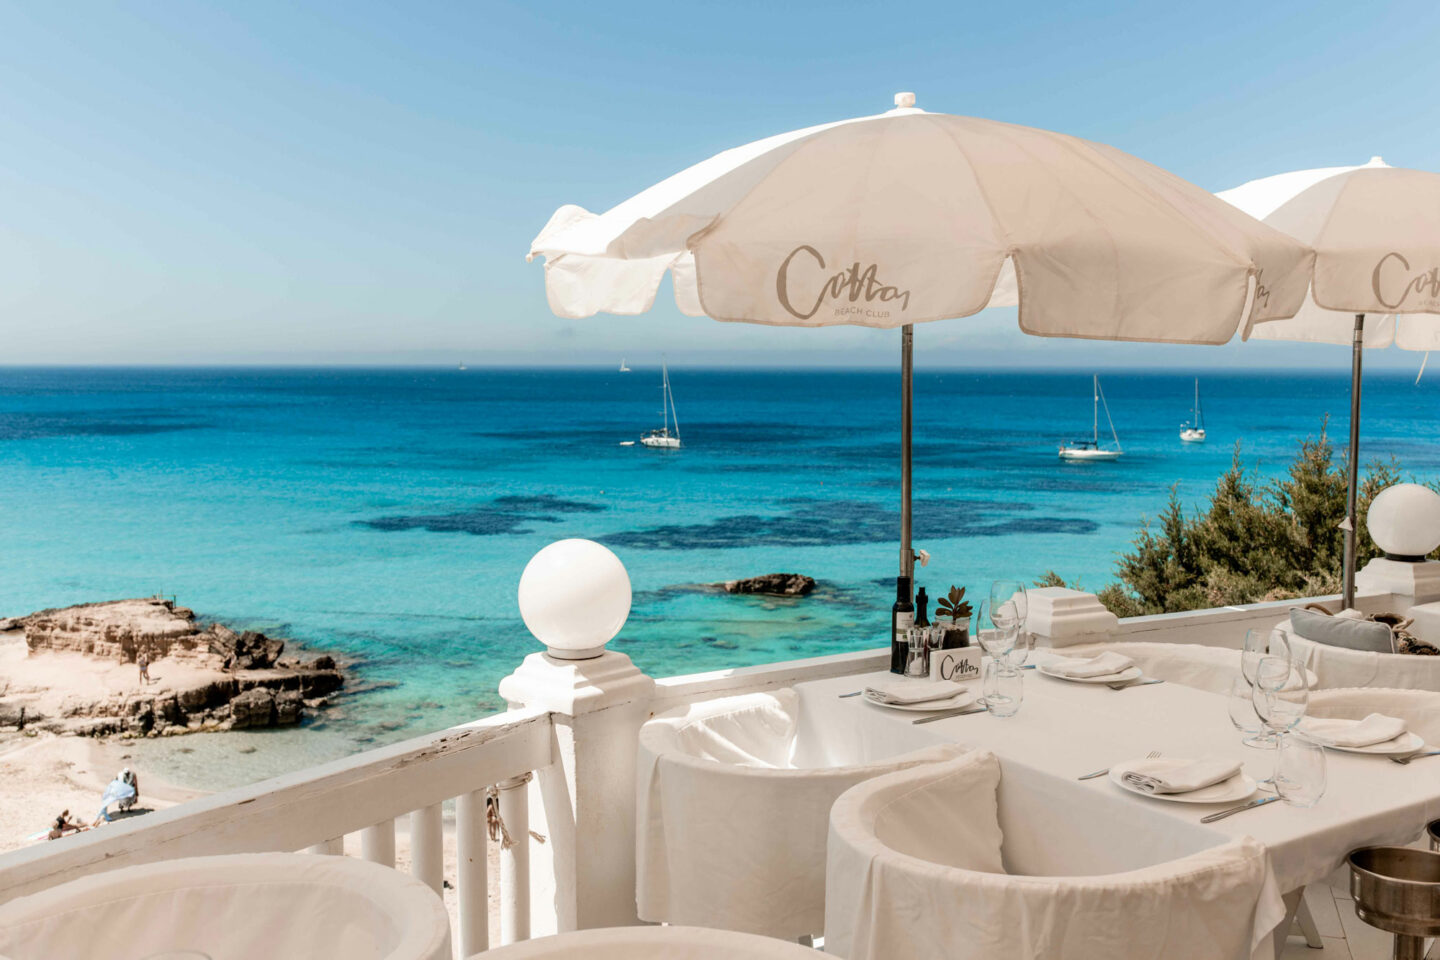 1-Top-things-to-do-in-Ibiza-Bucket-list--Instagram-Story-Template--kelseyinlondon-Kelsey-Heinrichs--What-to-do-in-Ibiza--Where-to-go-in-Ibiza-top-places-in-Ibiza-cotton-beach-club